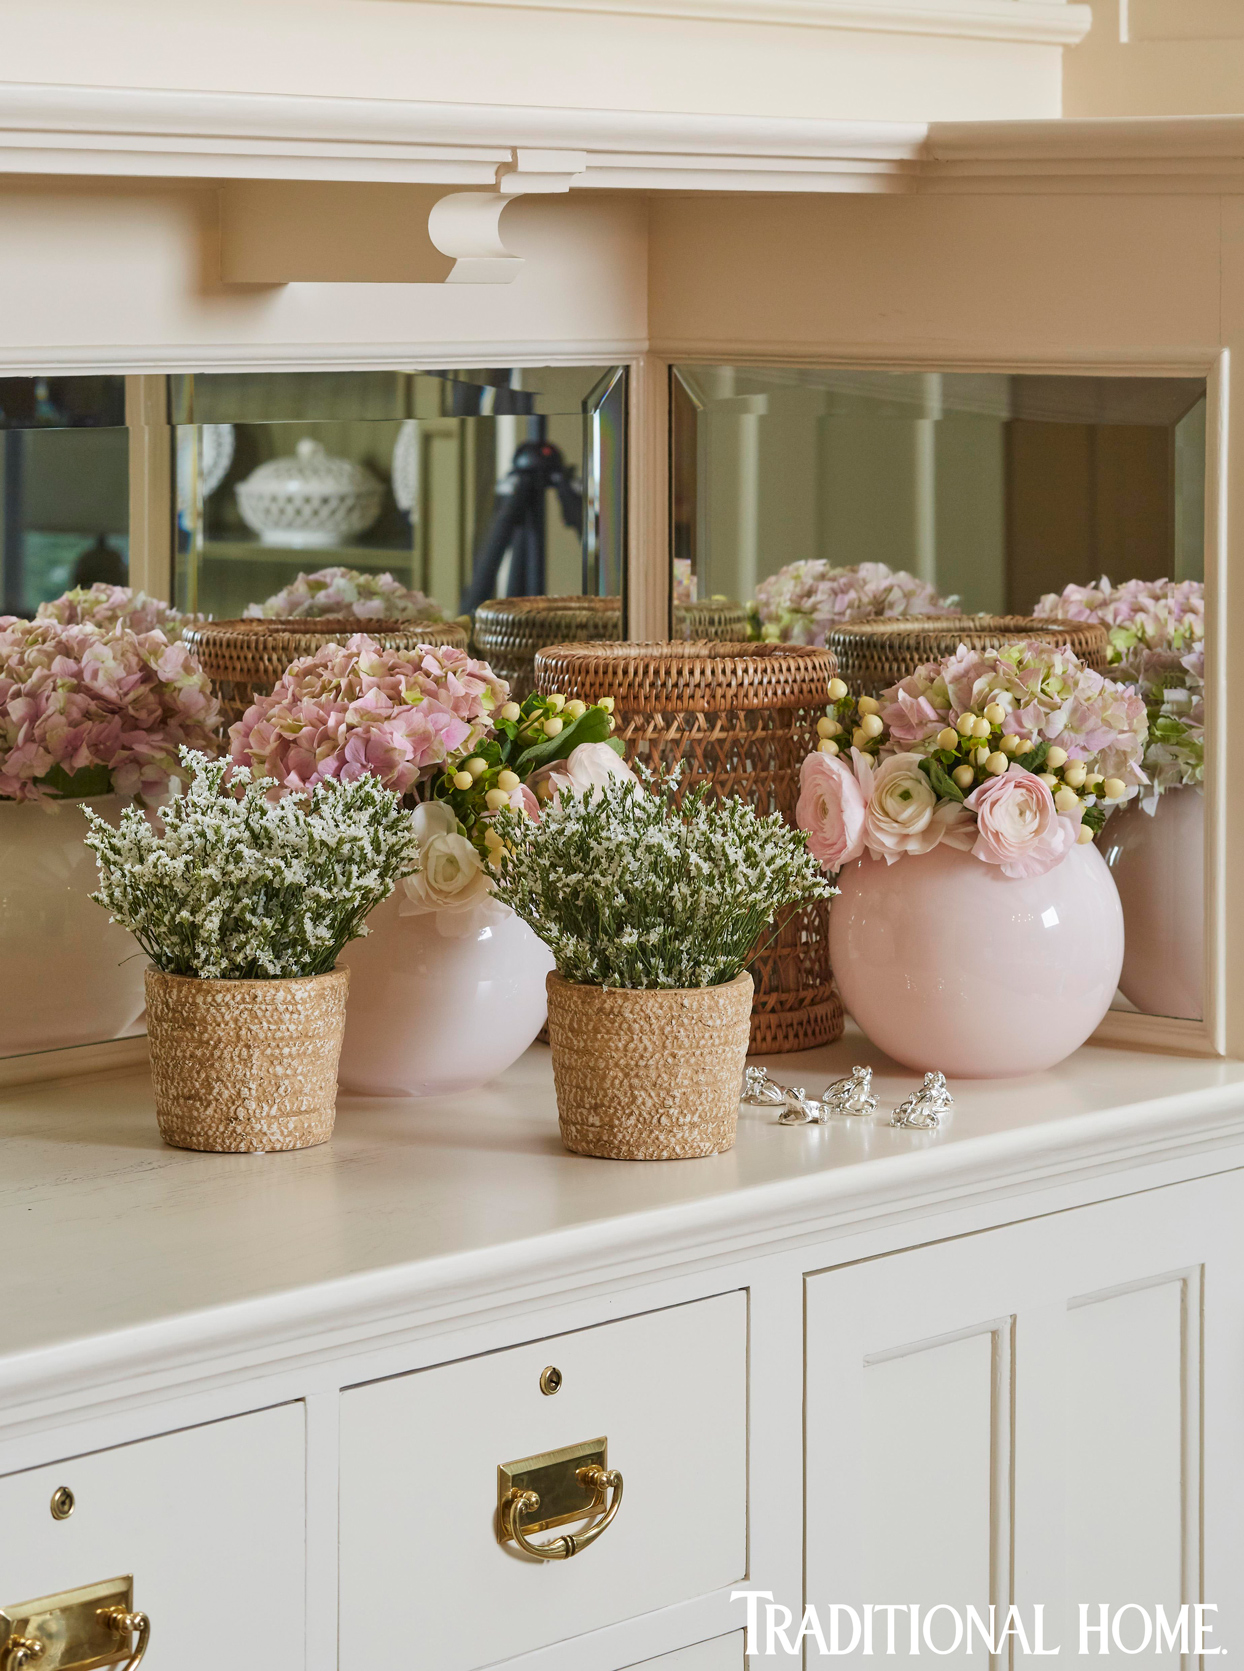 hydrangeas, ranunculus, and stock in wicker and glass containers